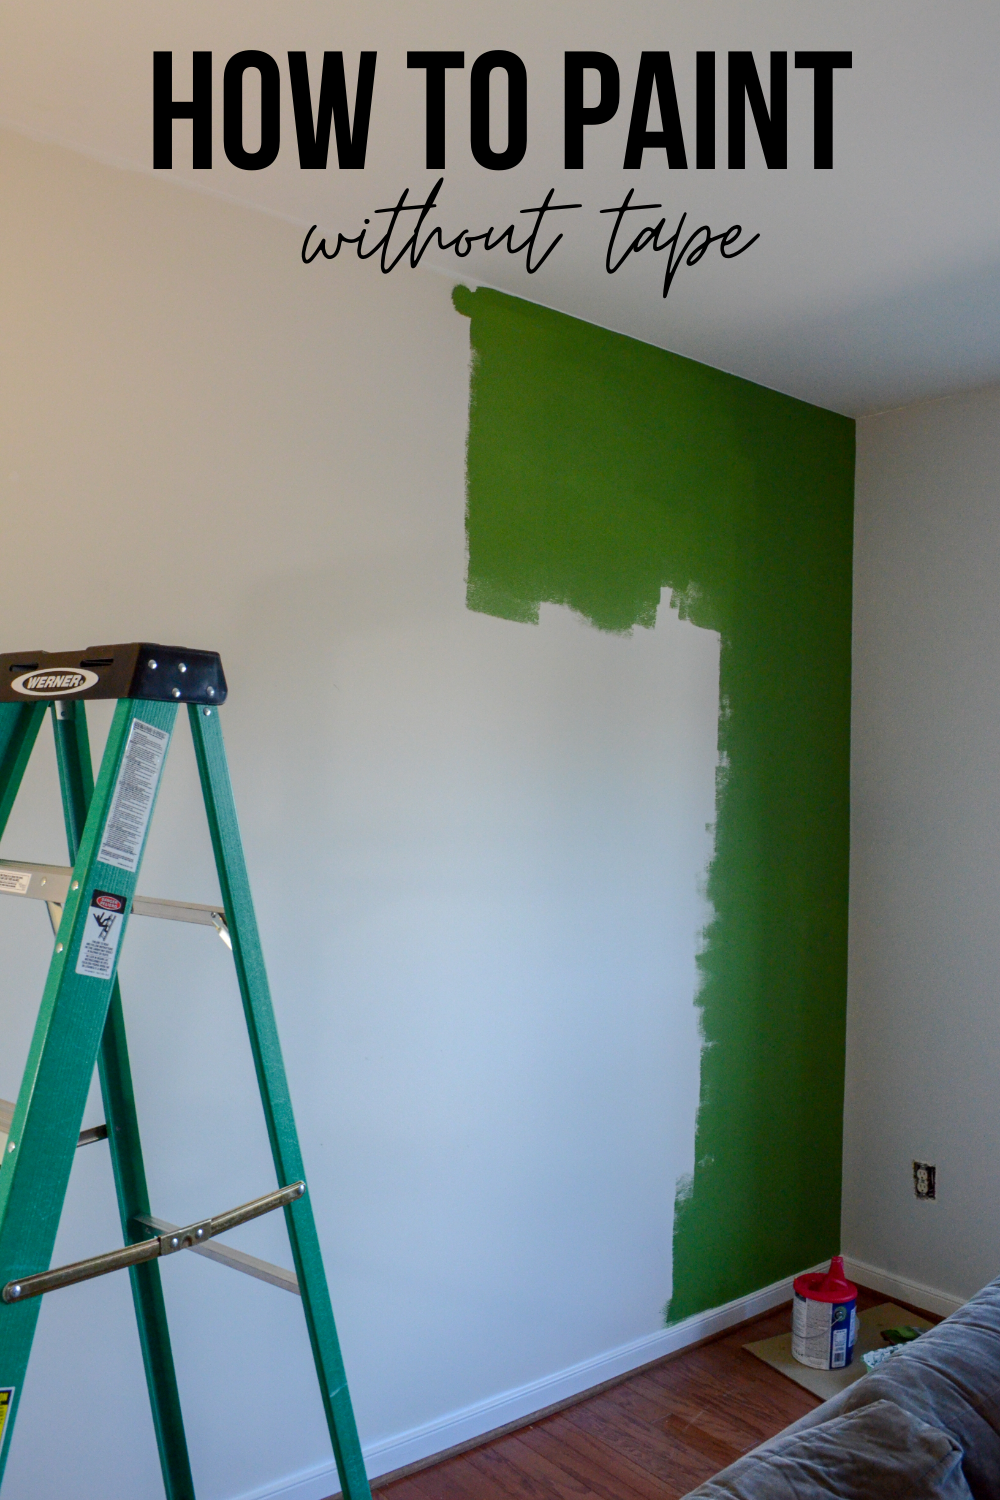 How To Paint Without Tape Painting Walls Tips Painting Room Tips Room Paint